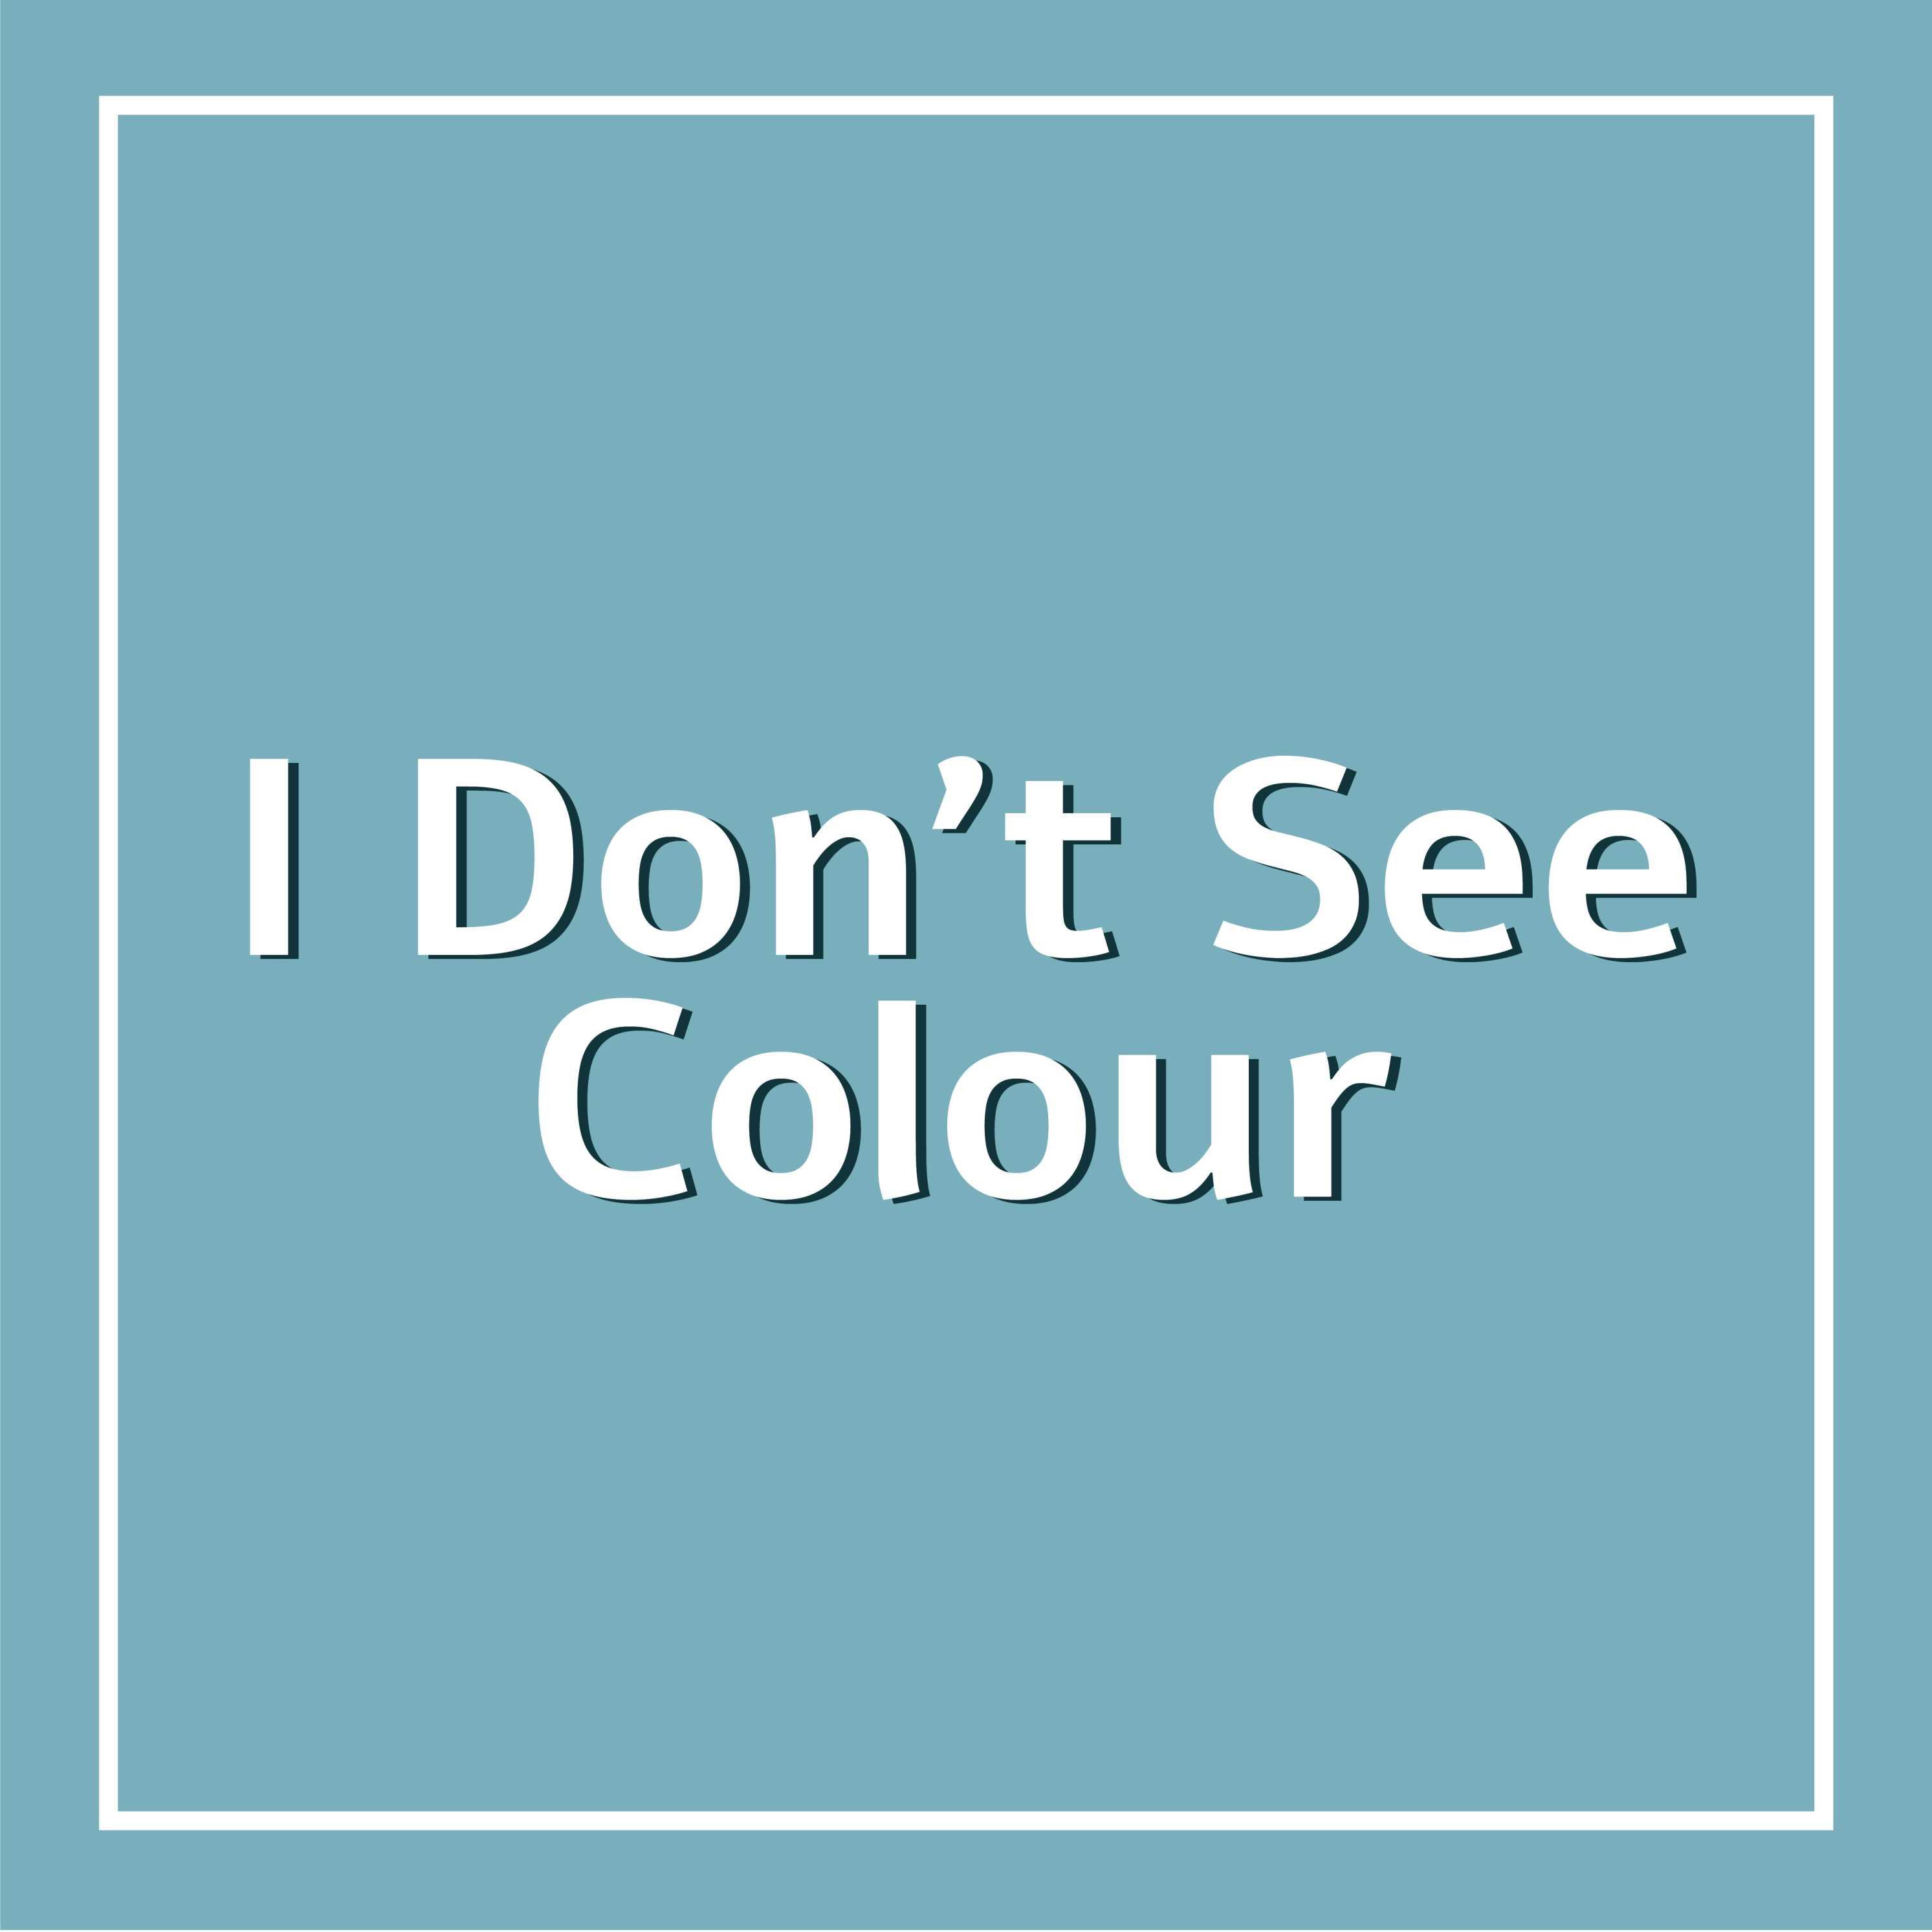 I Don't See Colour